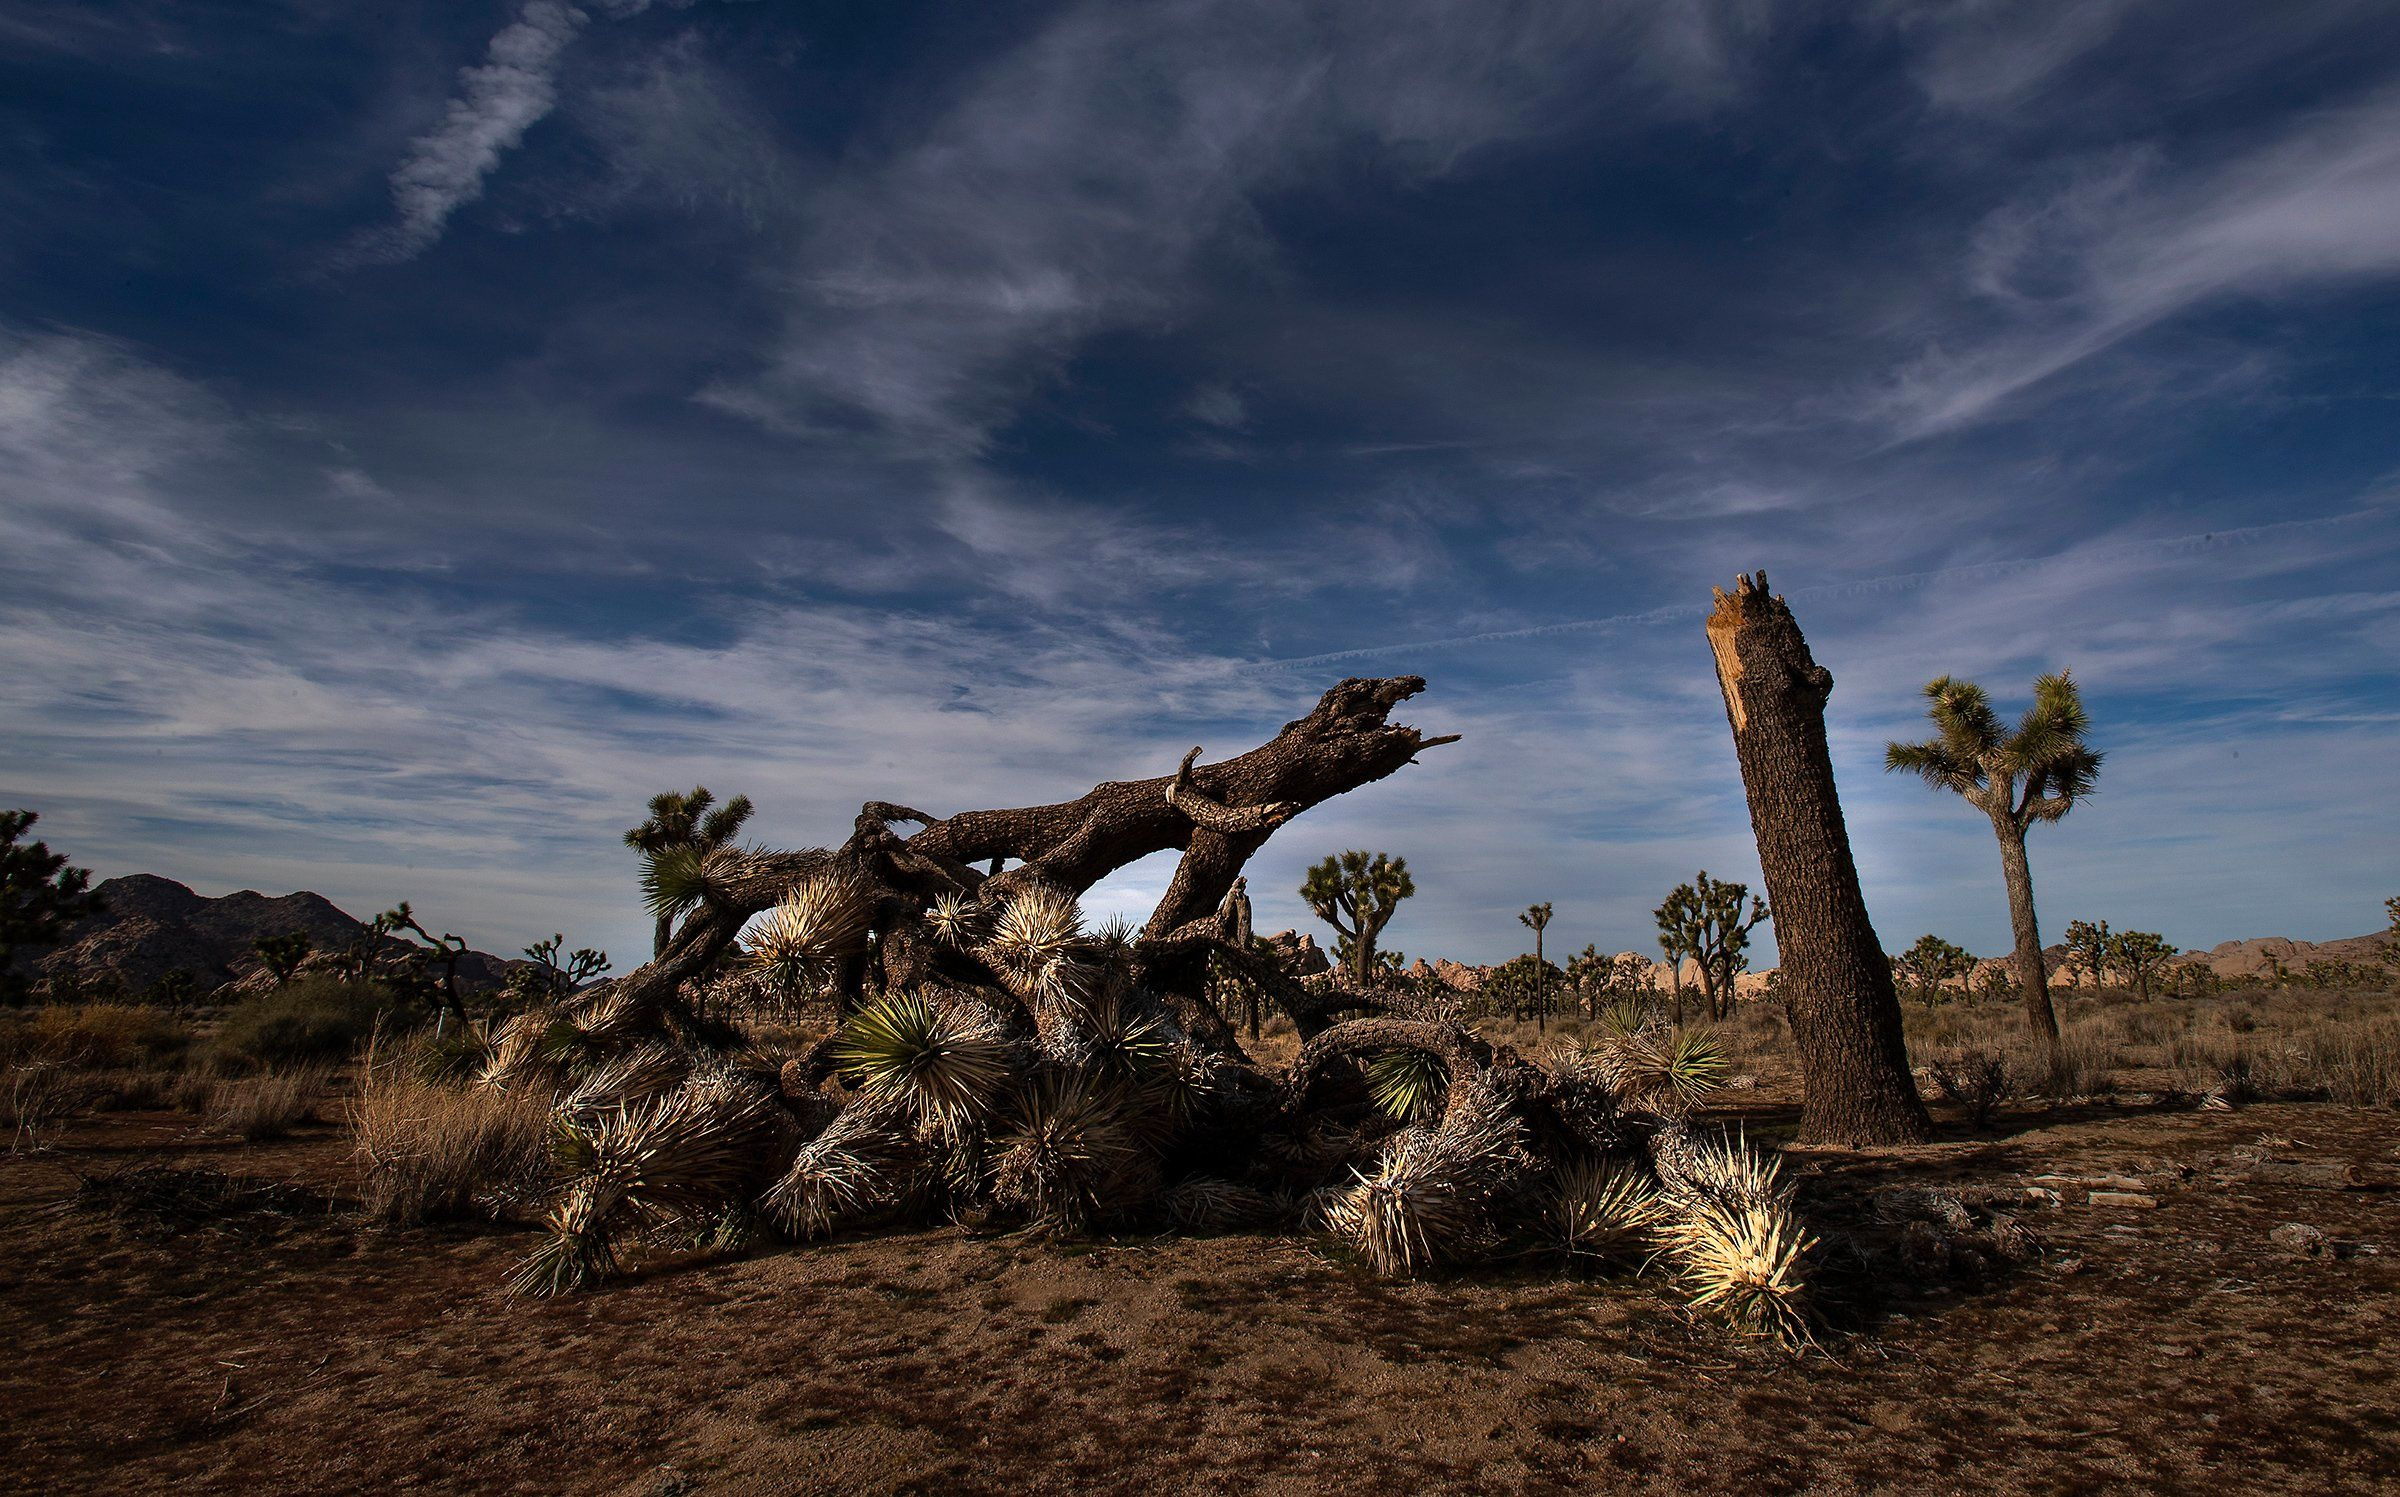 A once vibrant Joshua Tree was severed in an act of vandalism in California's Joshua Tree National Park on Jan. 8.